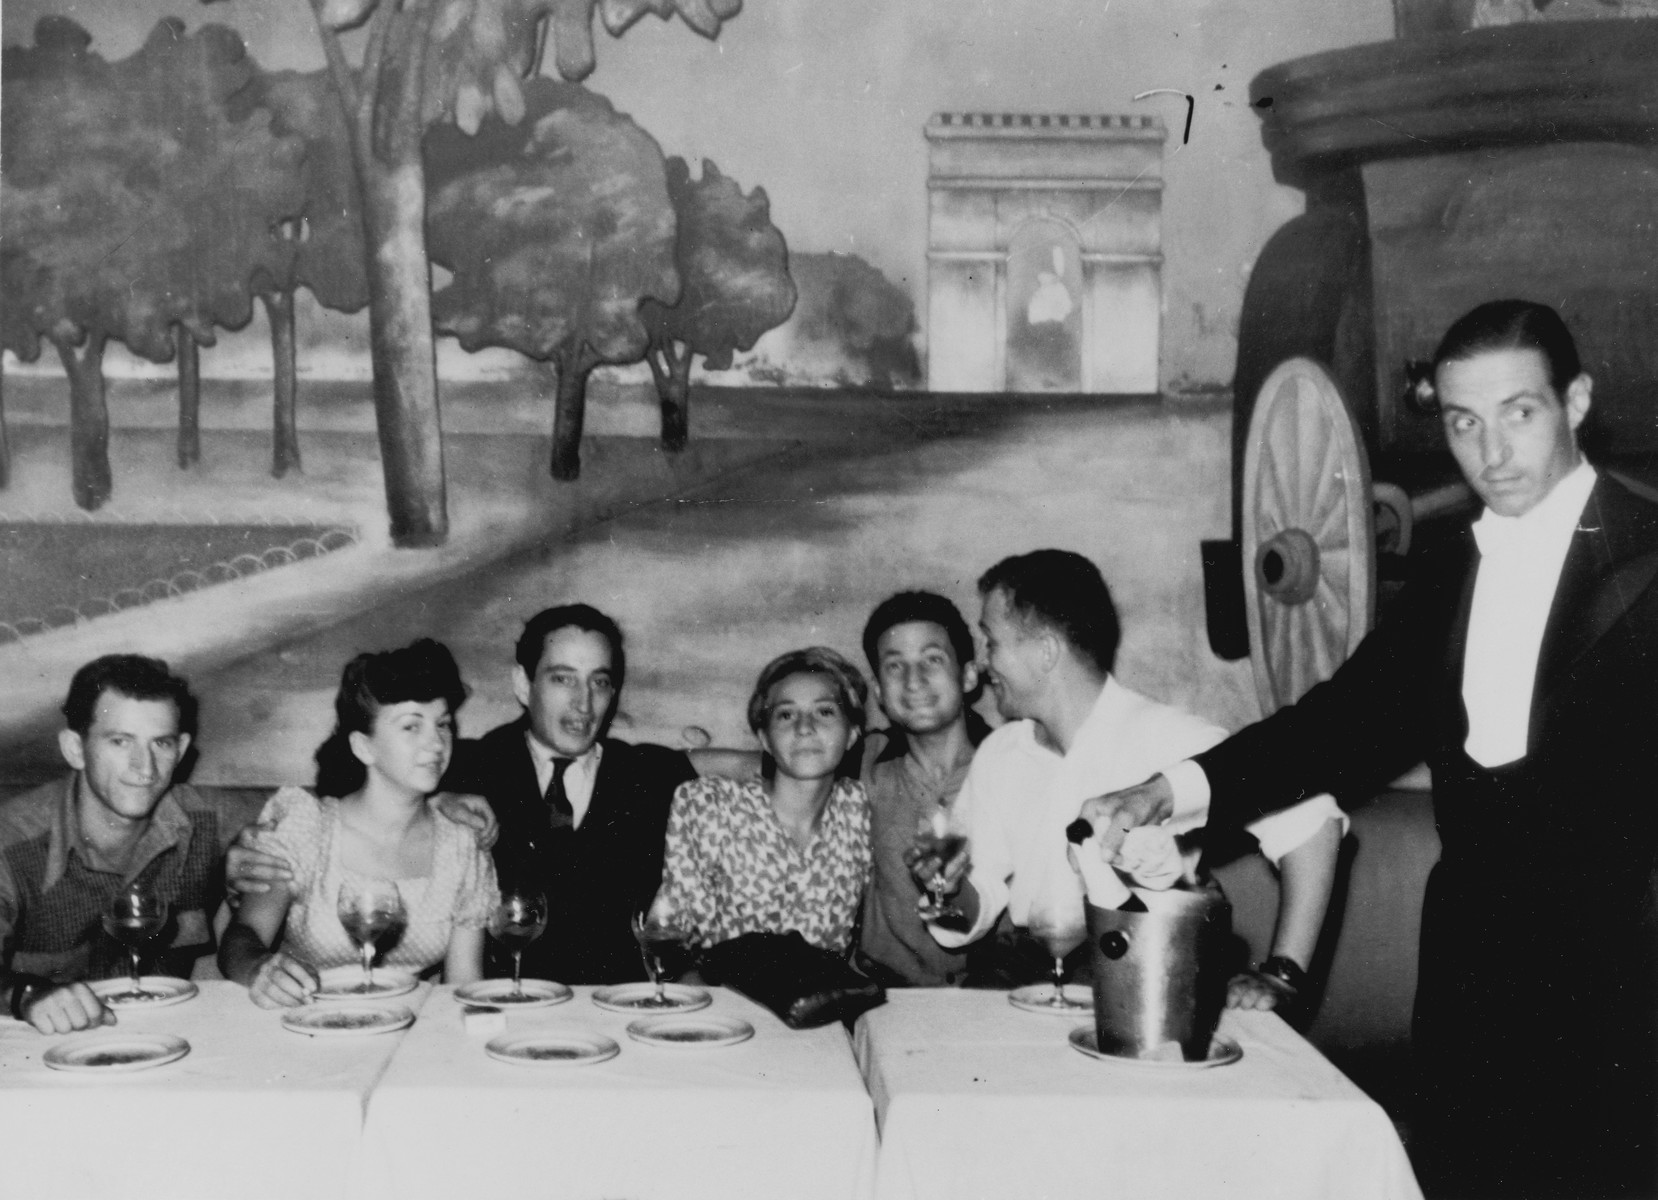 Crew members of the illegal immigrant ship Exodus 1947 drink a toast in a restaurant while on shore leave in Marseilles shortly before sailing for Palestine.  Among those pictured are: Renee and Bernard Marks (fourth and fifth from the left), Avraham Siegel (far left) and Bentley Forman (sixth from the left).